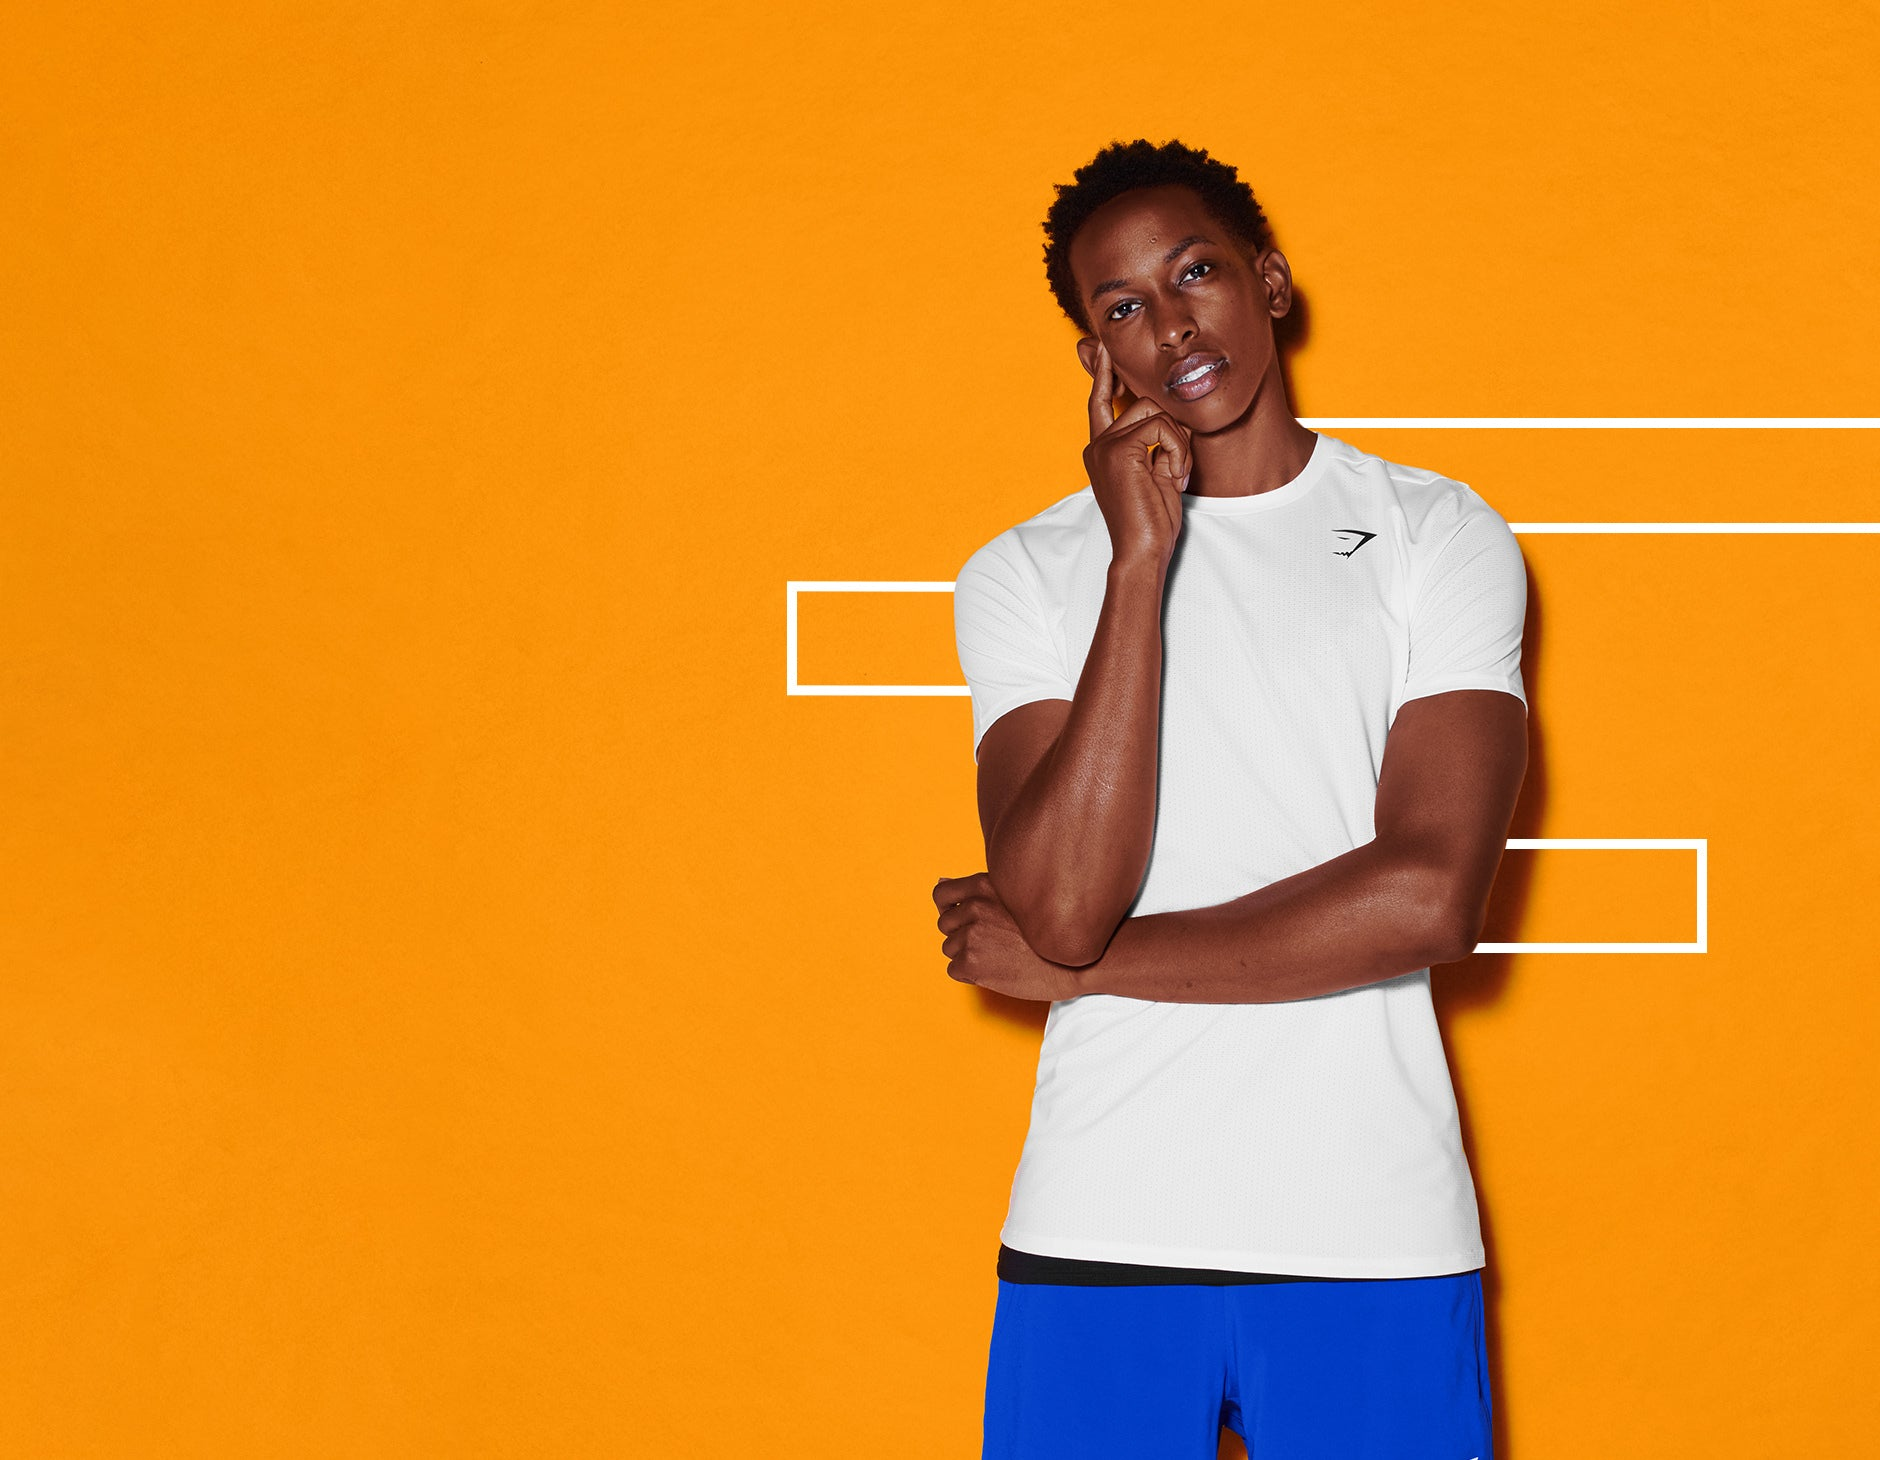 Male posing in a white Arrival t-shirt against an orange background with white graphics.